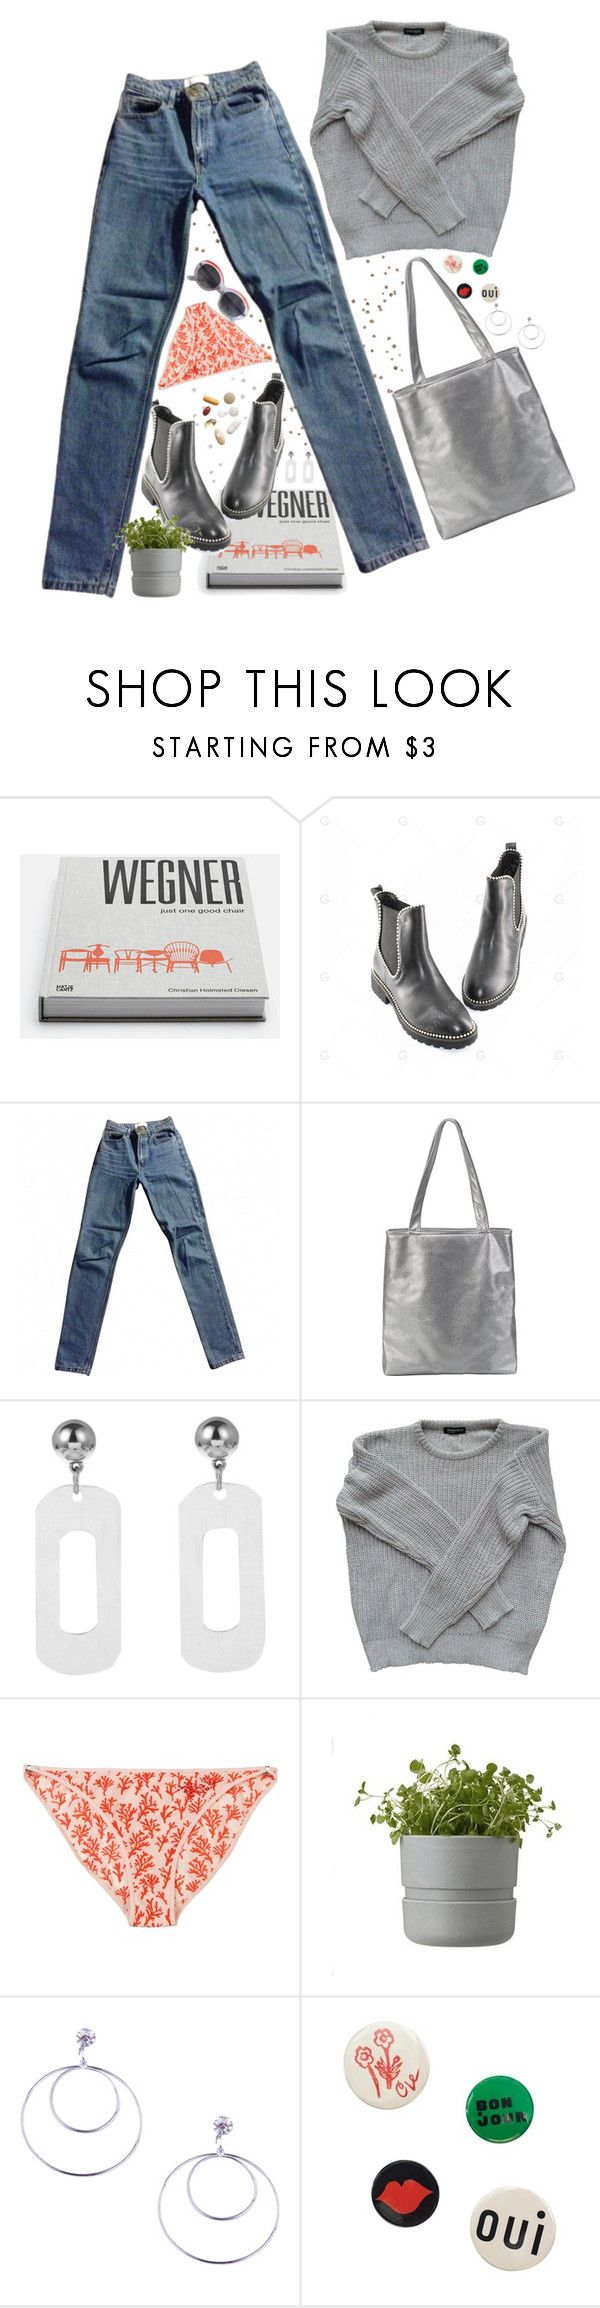 """""""#9G Metallic"""" by lsaroskyl ❤ liked on Polyvore featuring American Apparel, Guide London, Rig-Tig by Stelton, Clare V. and Courrèges"""